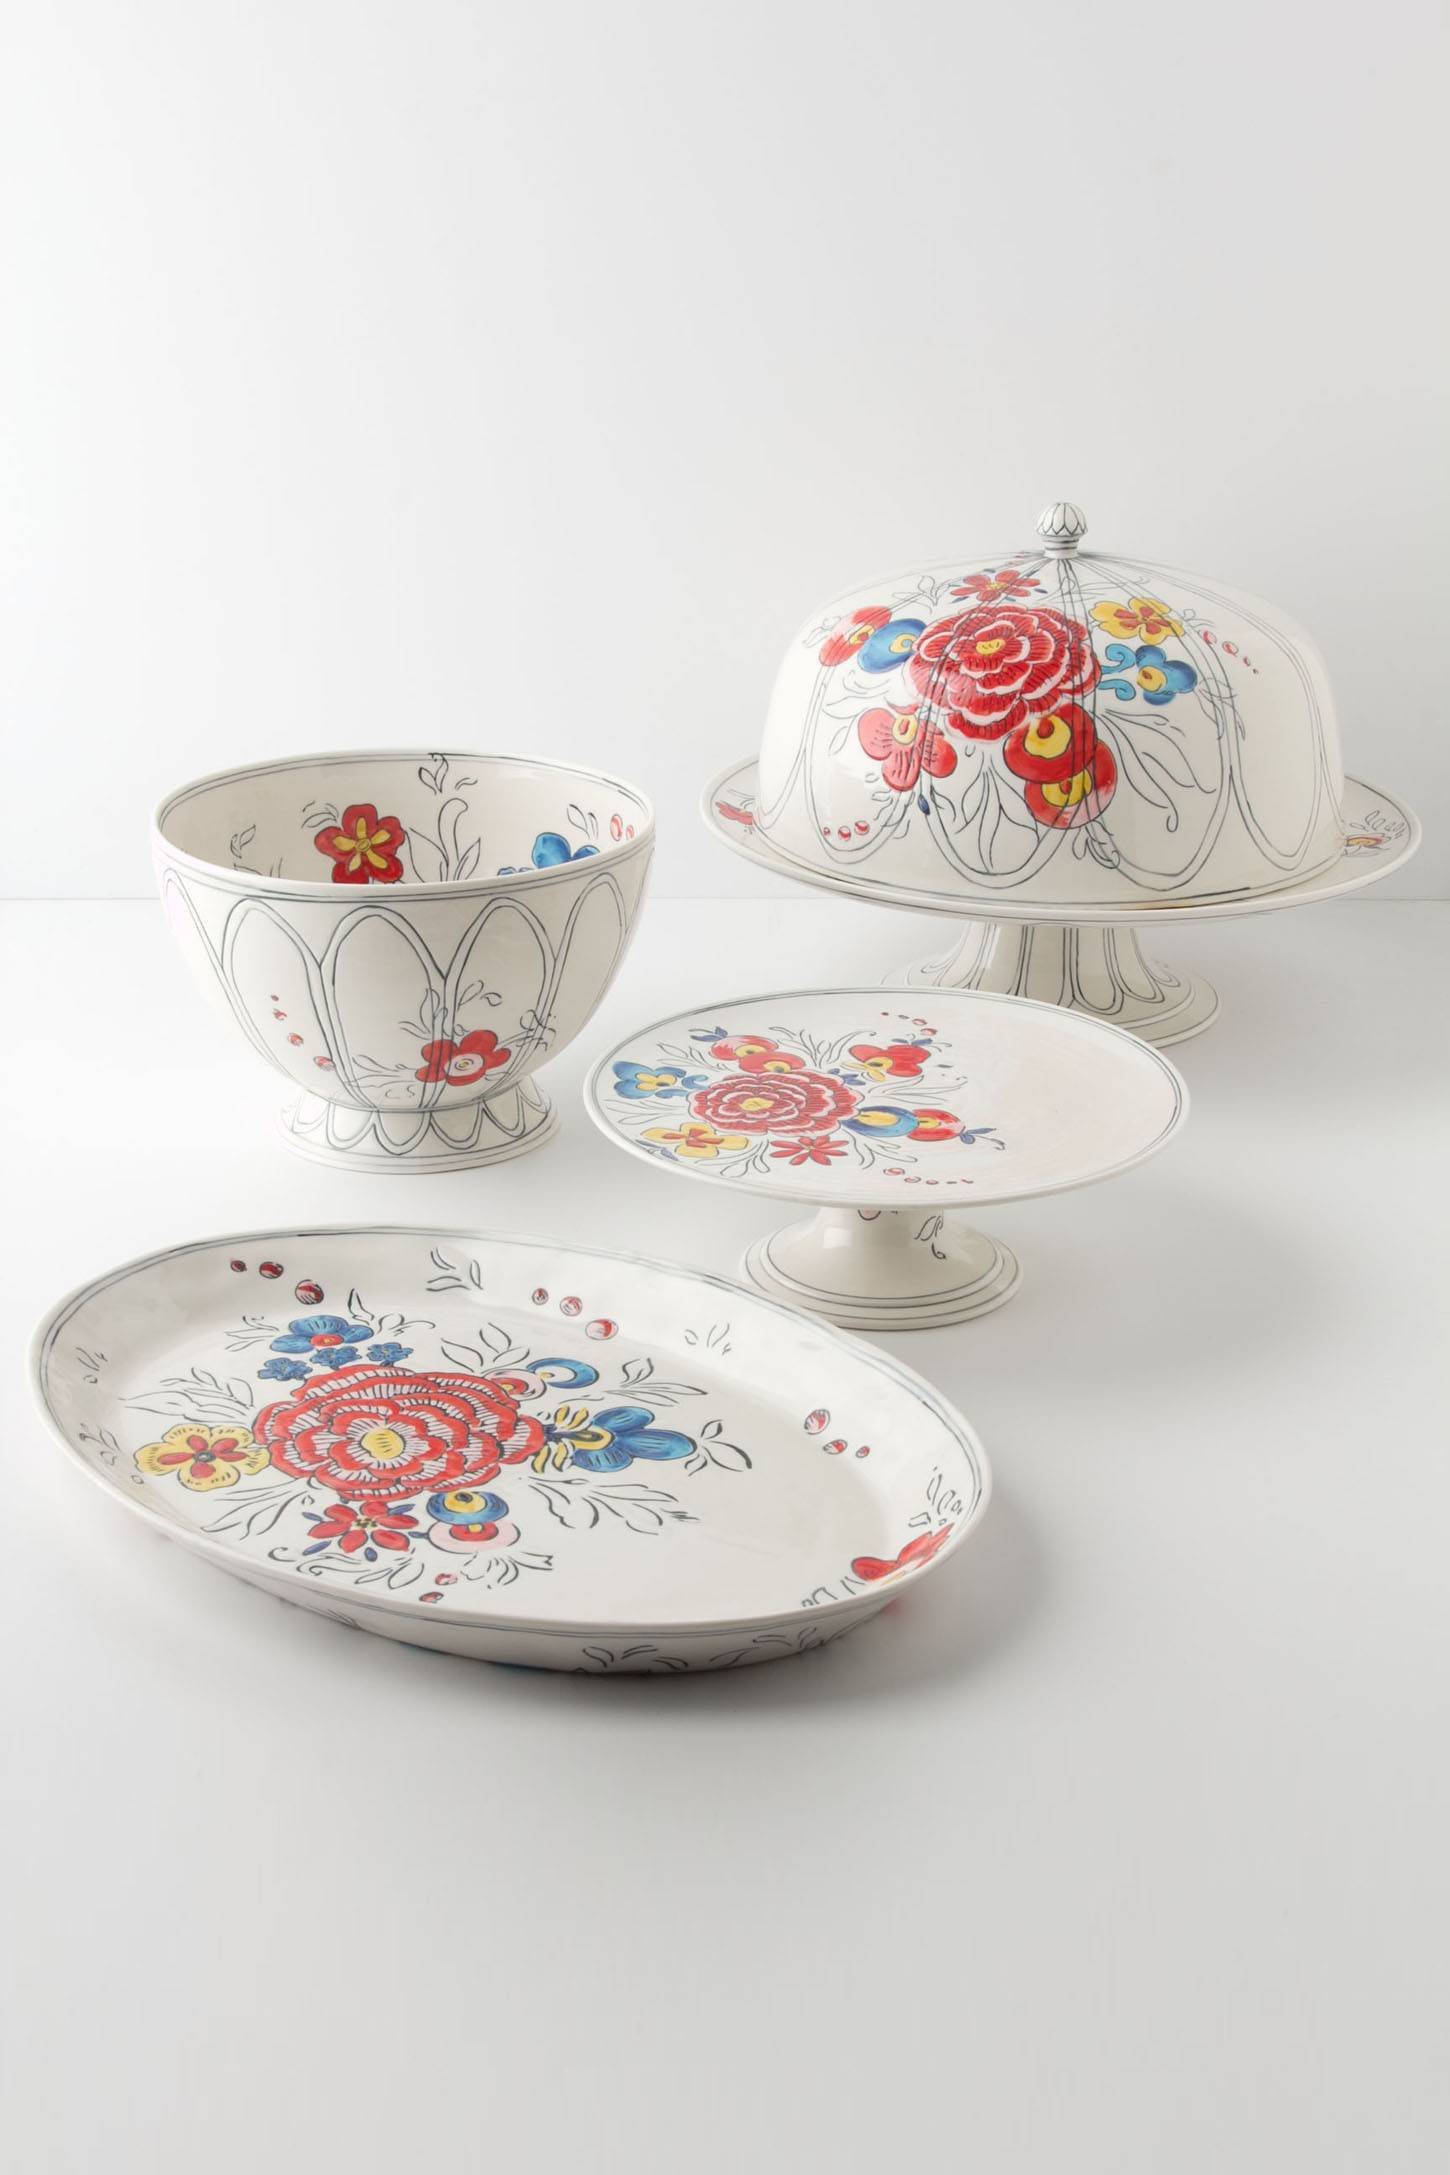 The Peony Portrait collection was designed by Molly Hatch for sale at Anthropologie stores nationwide. Hatch is a fine artist who has found a second career in product design after completing a residency program at Kohler Co. in Wisconsin.